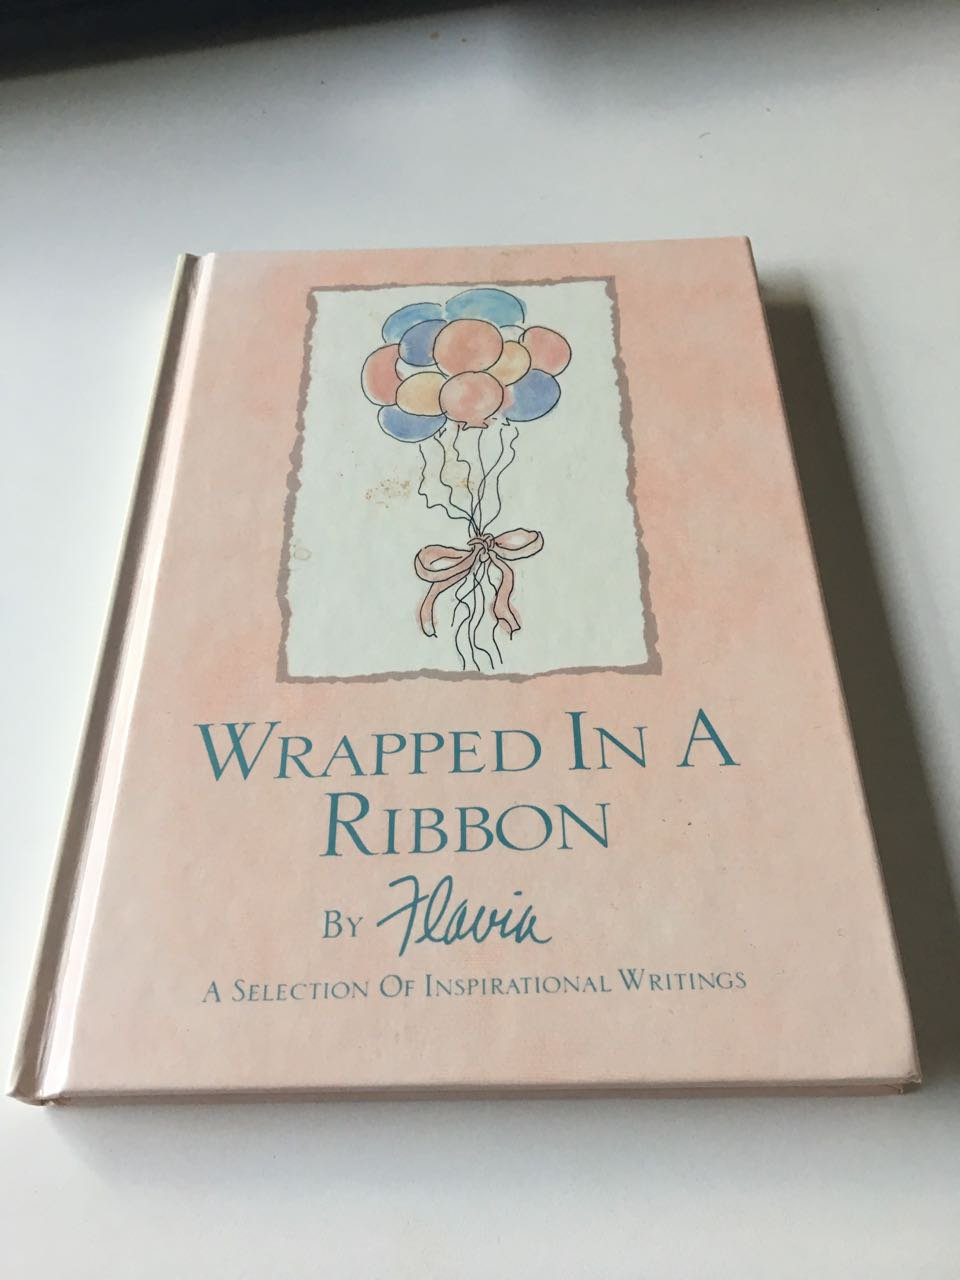 Wrapped in a Ribbon: A Selection of Inspirational WritingsSep 1989 by Flavia